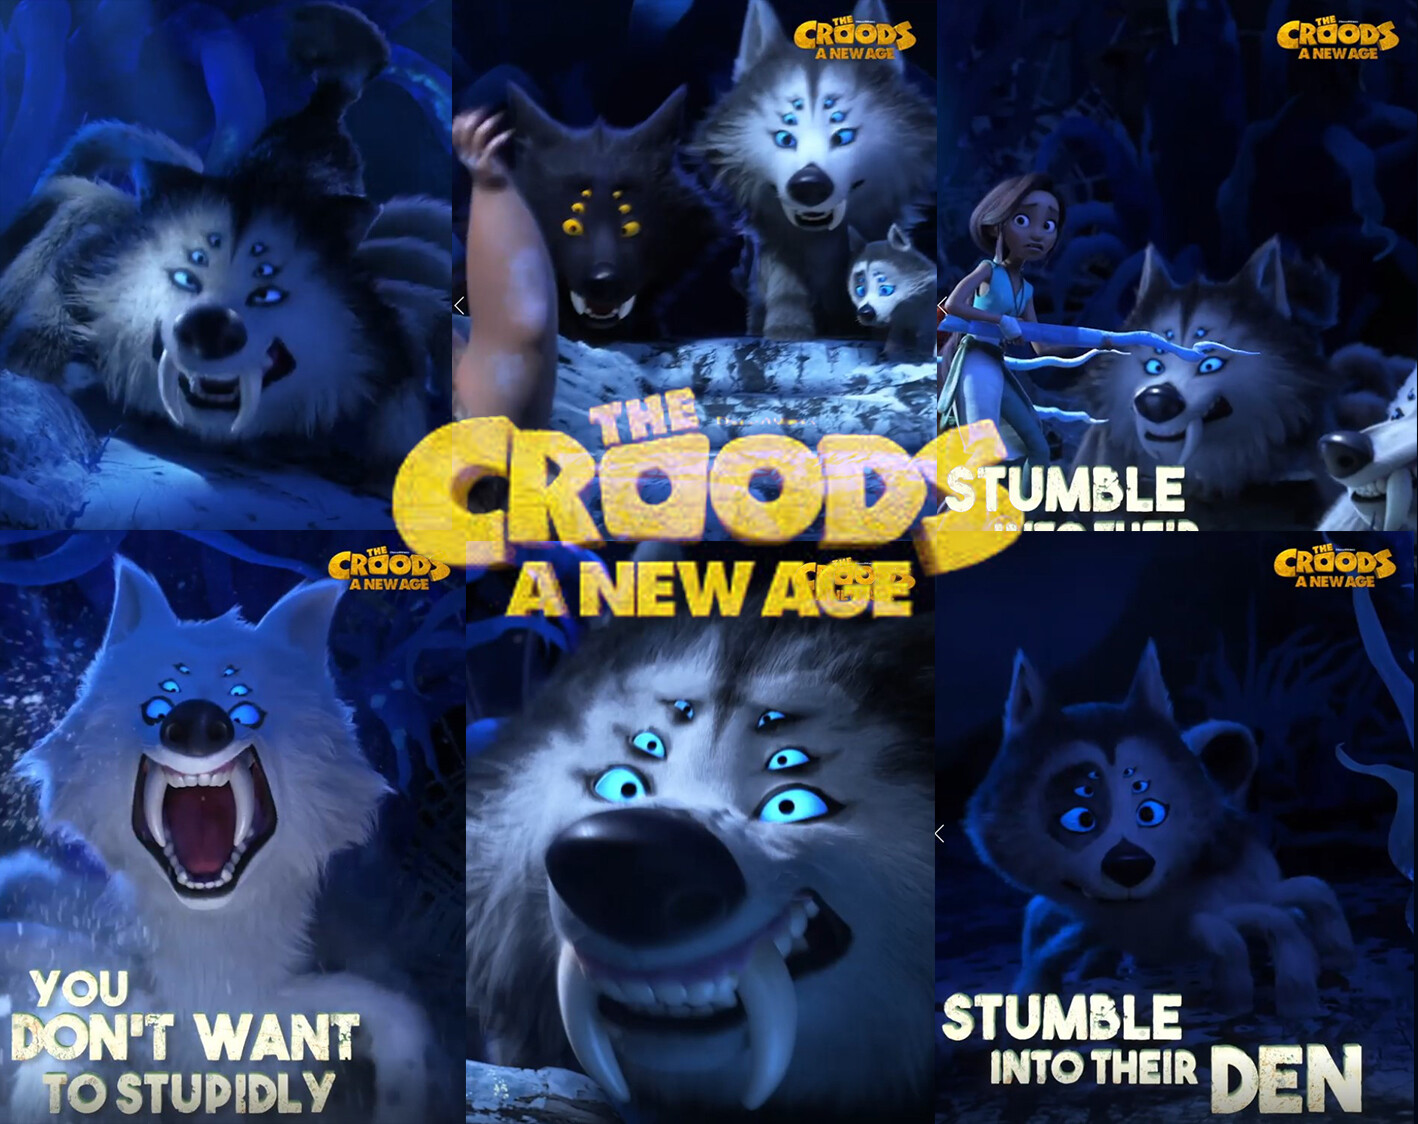 I worked on the wolfspiders model. all other aspects were done by the amazing Croods new age team at Dreamworks Animation.